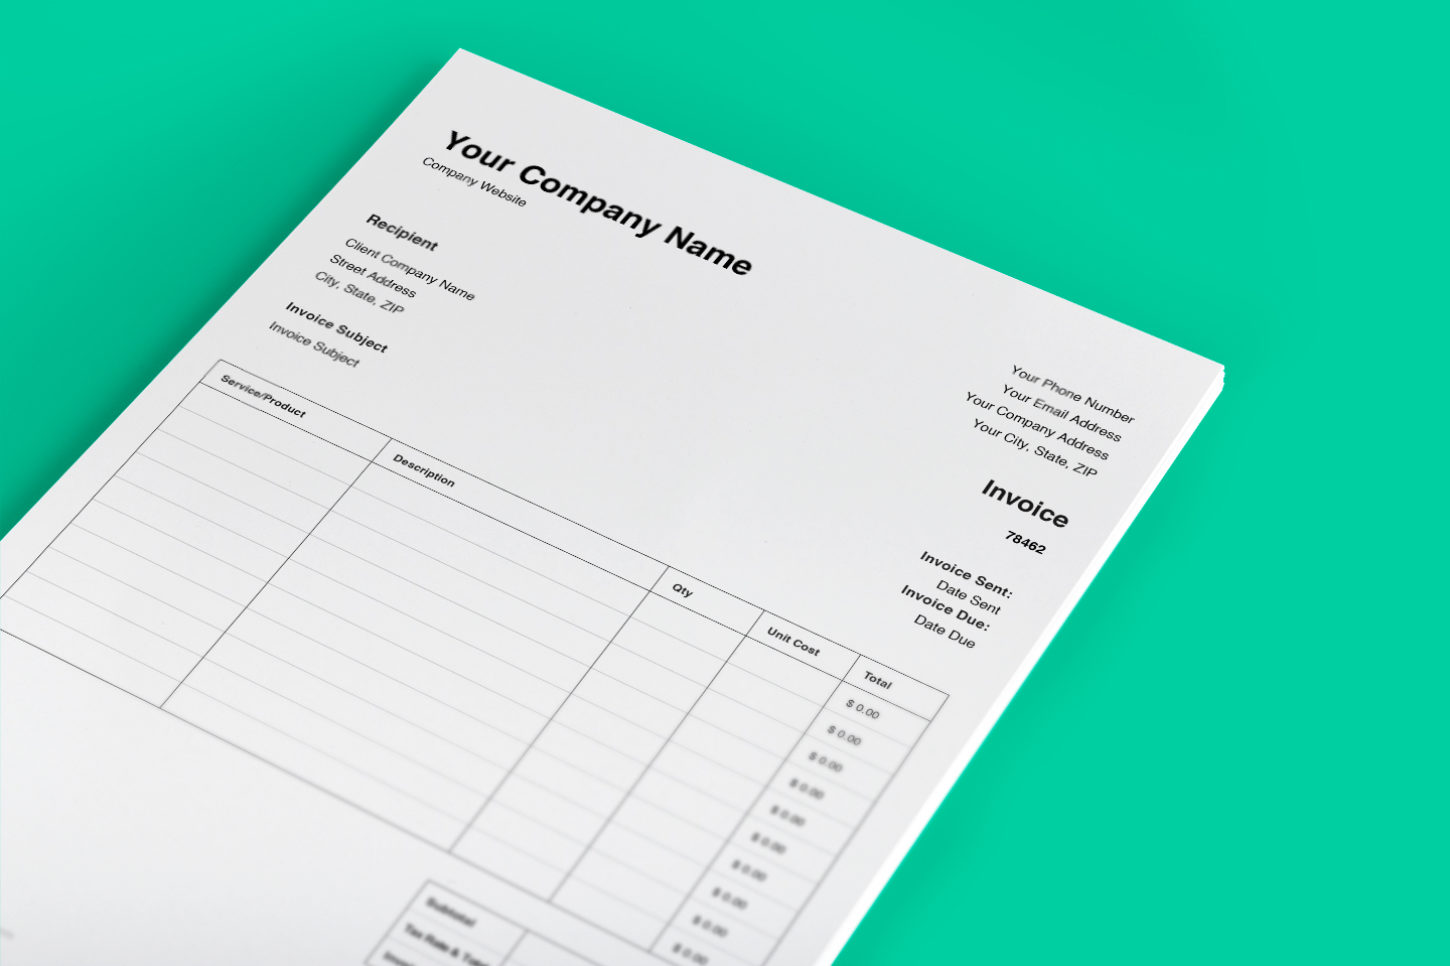 image of an invoice template for home service business owners